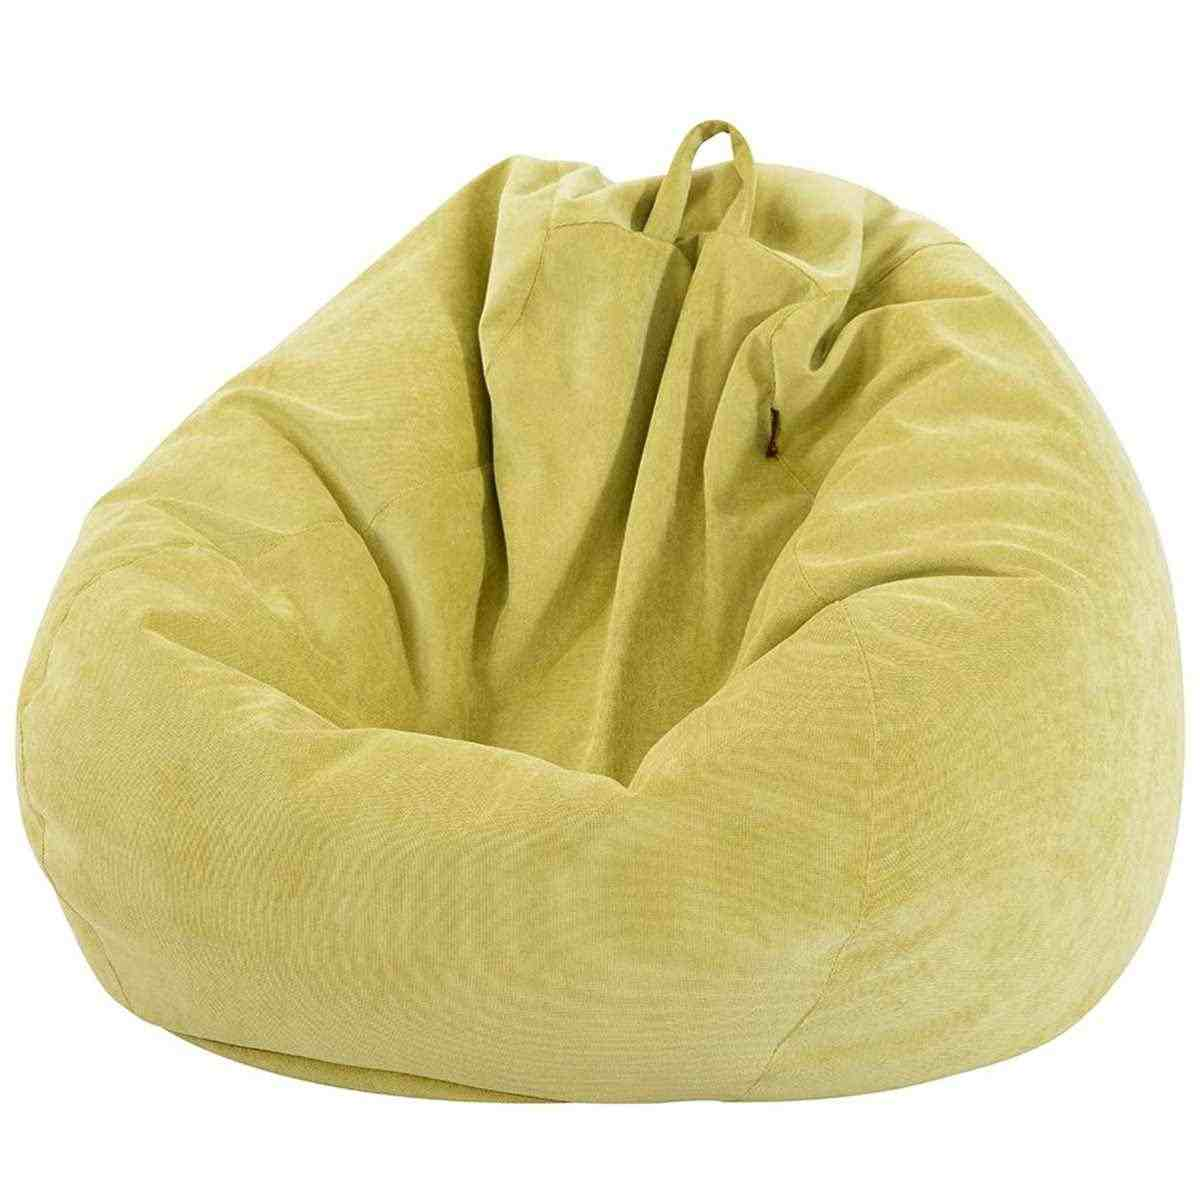 70x80cm Lazy Sofas Cover Chairs Cover with Inner Liner Warm Corduroy Lounger Seat Bean Bag Pouf Puff Couch Tatami Living Room